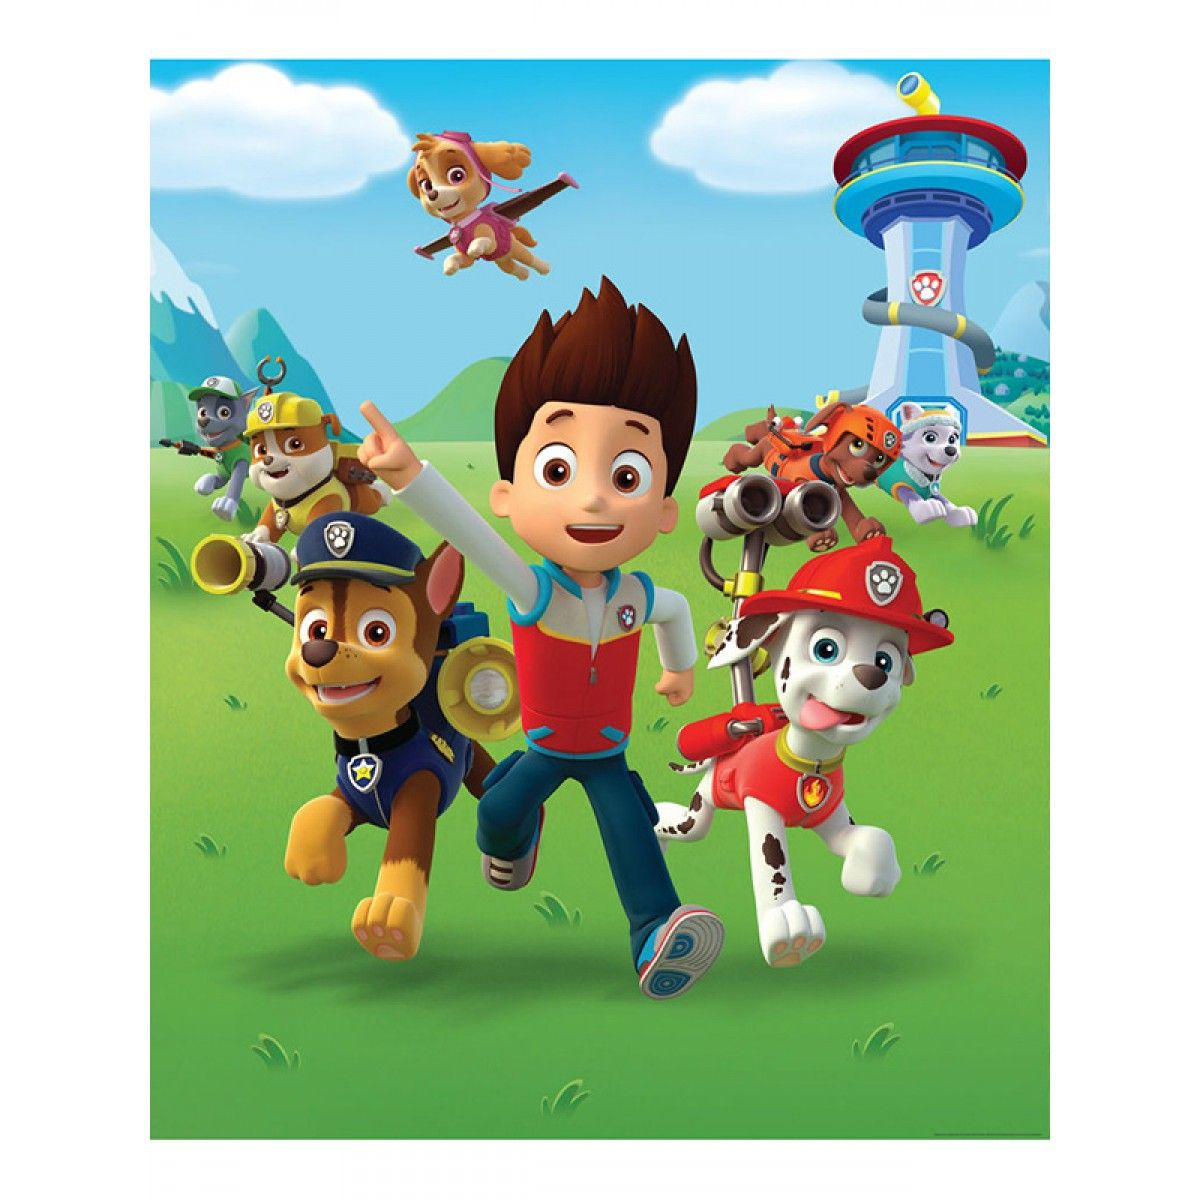 Official Paw Patrol Merchandise Transform Your Room With This Designer Wallpaper Mural Is Made Up Of Eight Panels For Easy Application